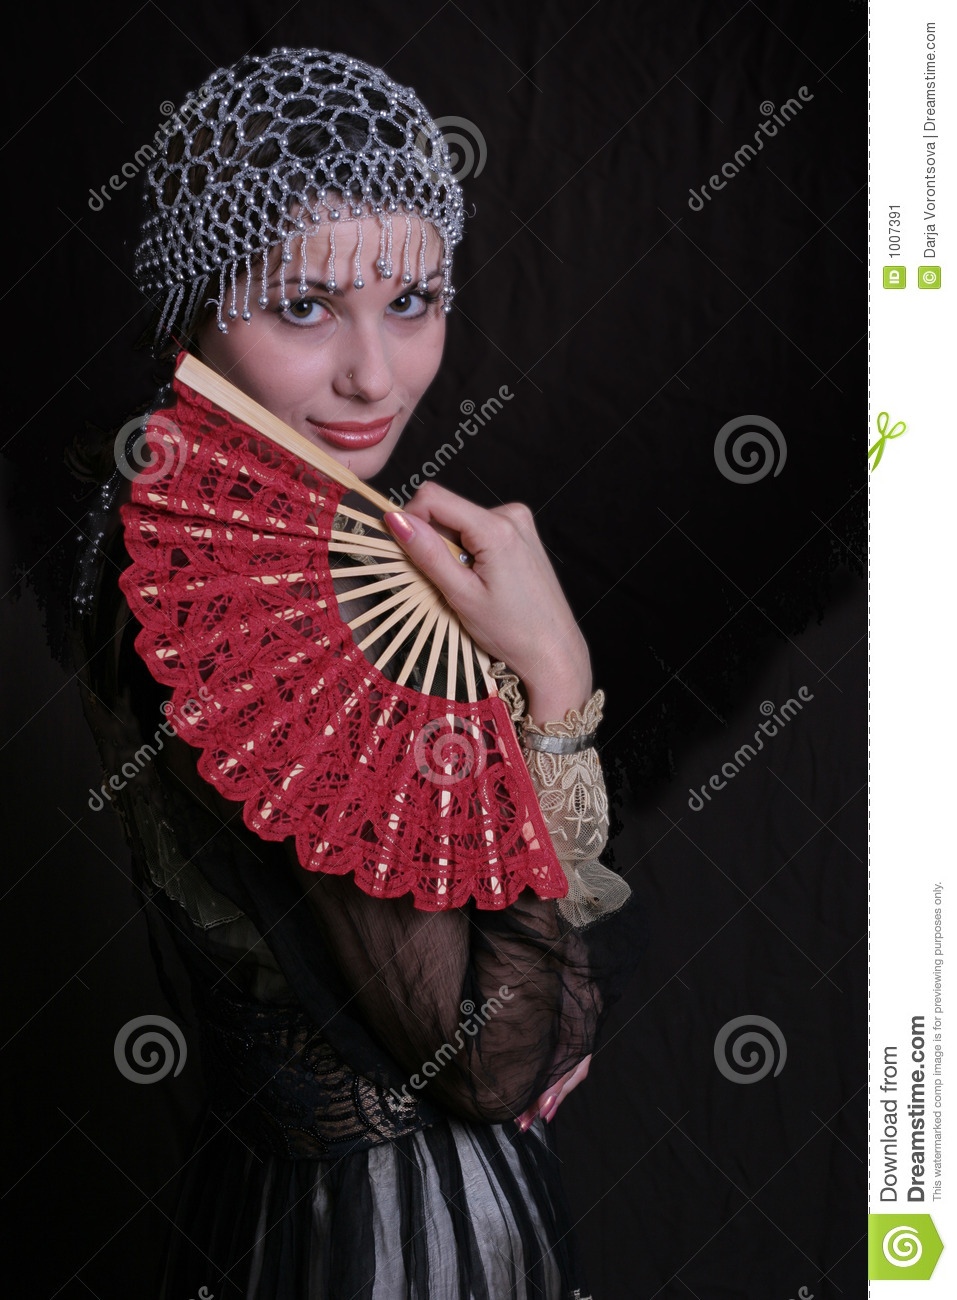 Old Fashioned Woman With Fan Stock Image - Image: 1007391